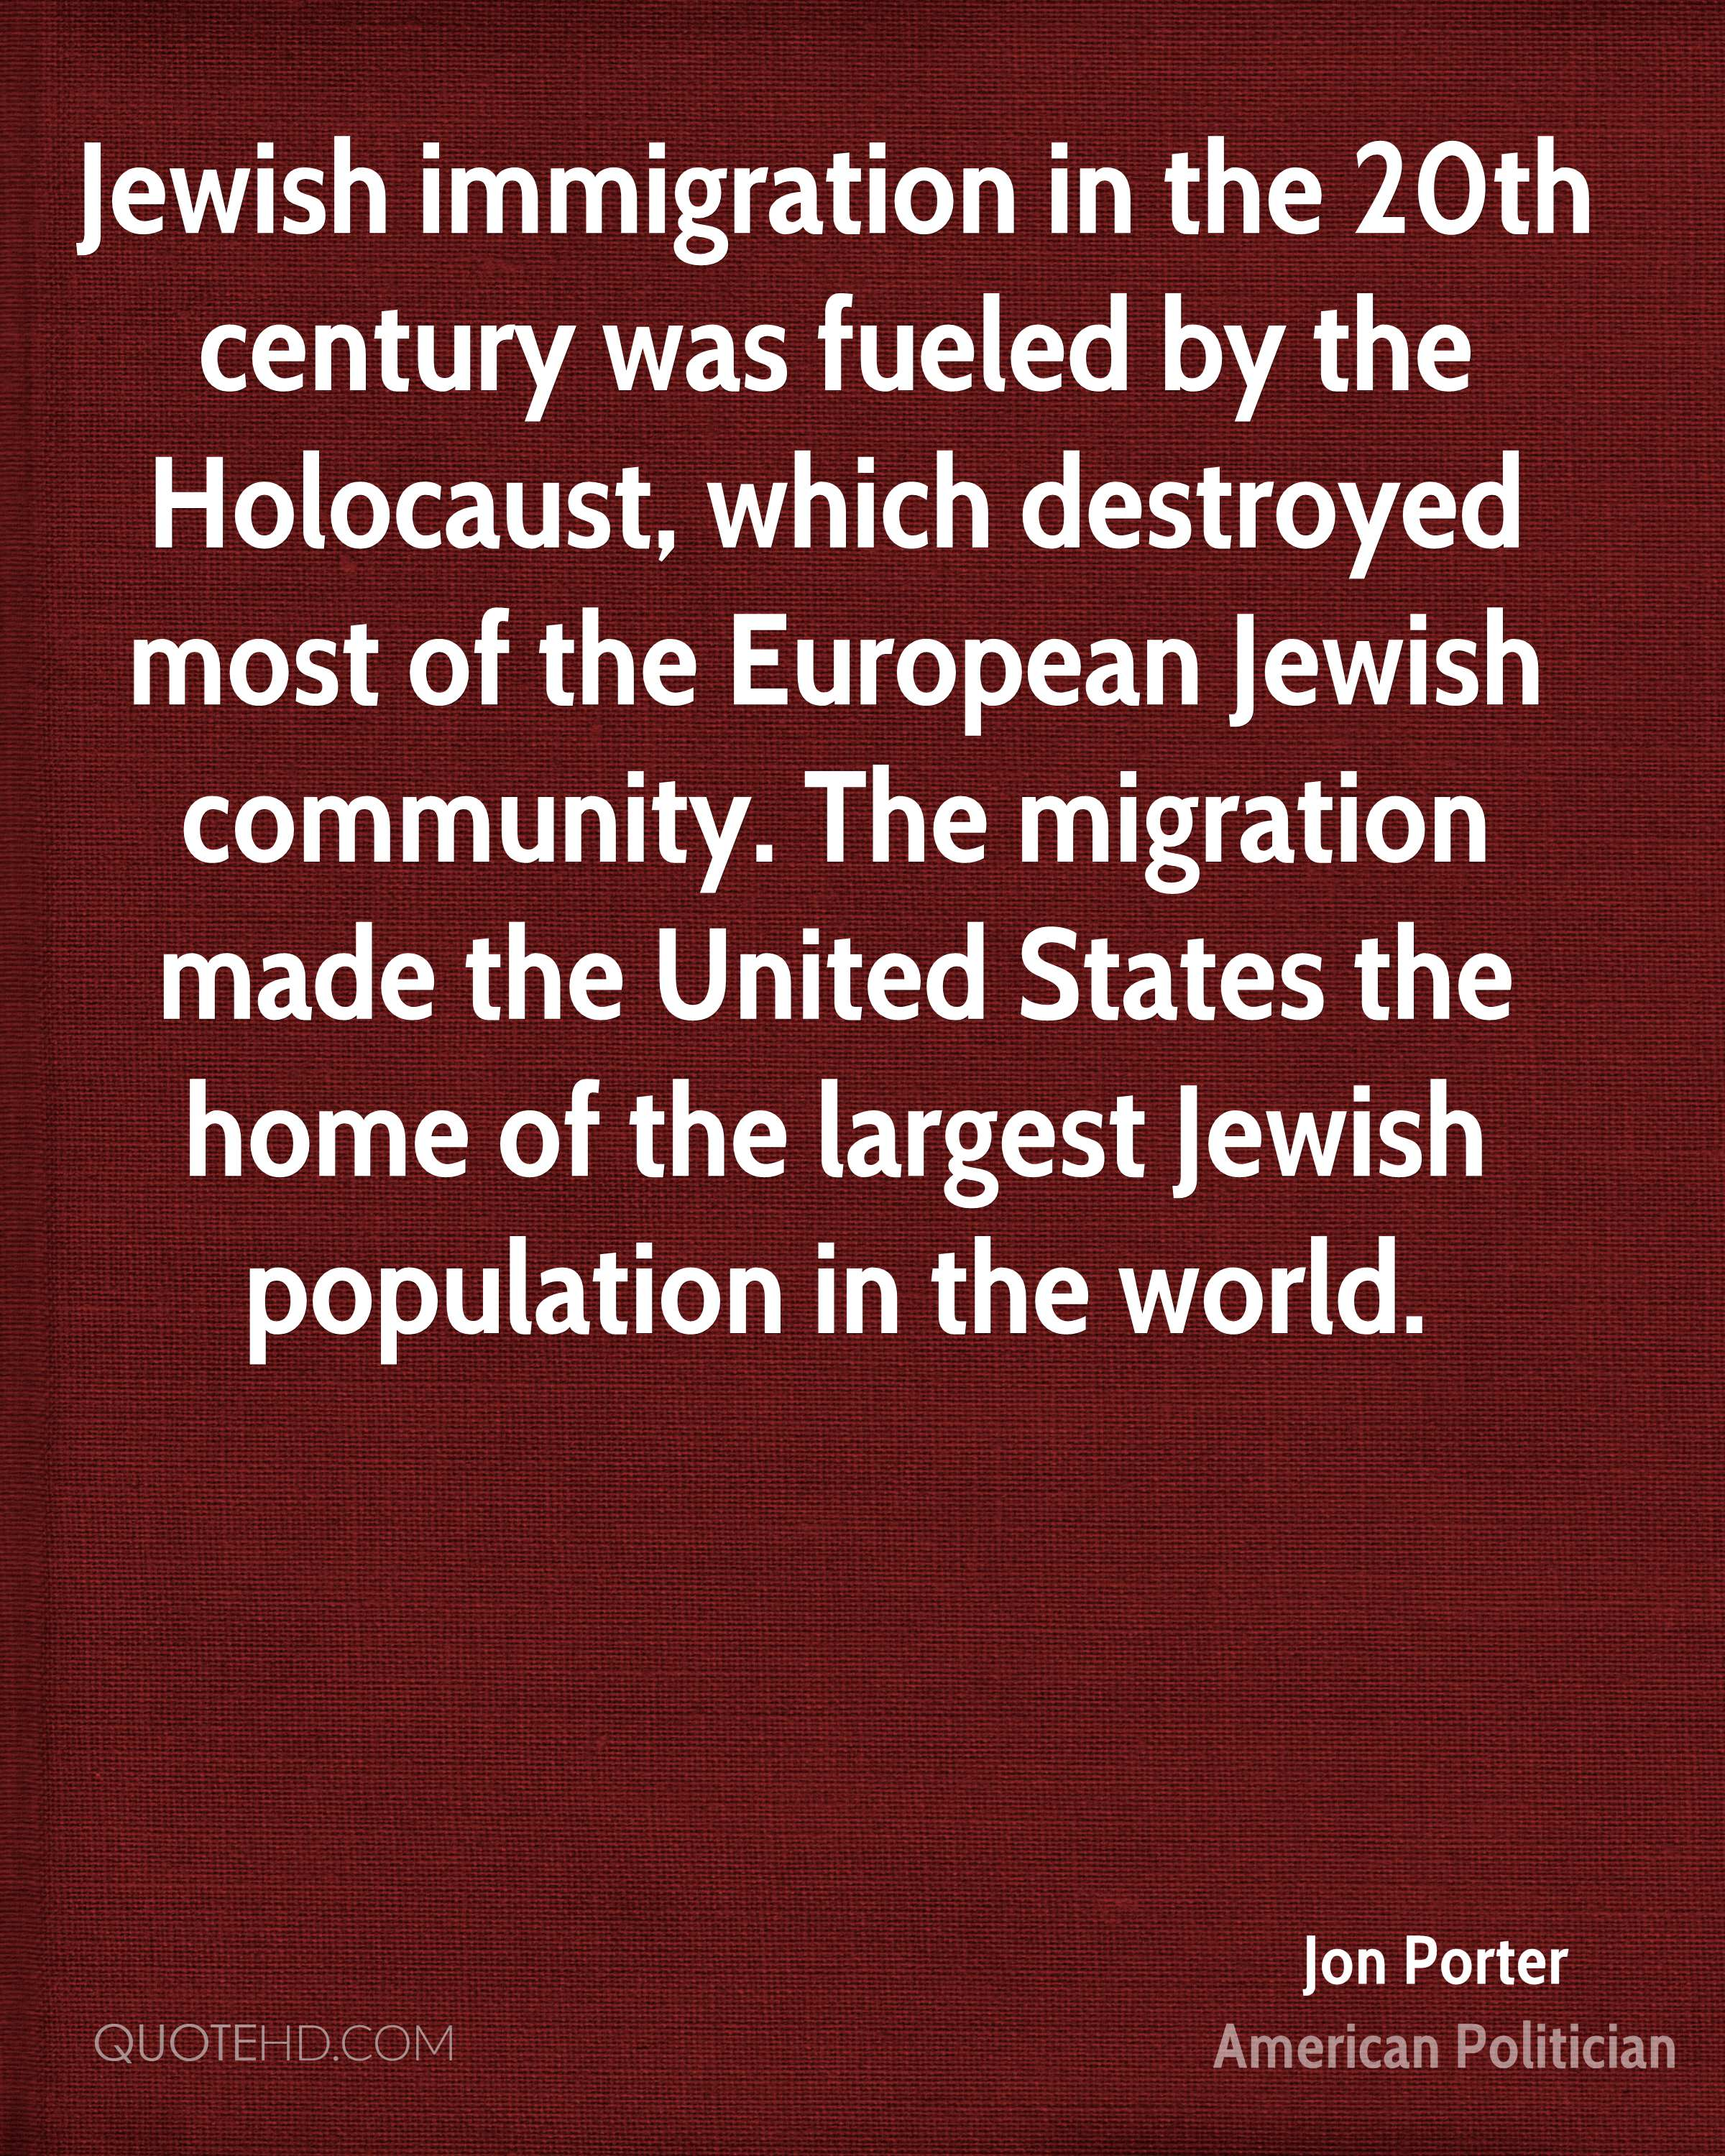 Jewish immigration in the 20th century was fueled by the Holocaust, which destroyed most of the European Jewish community. The migration made the United States the home of the largest Jewish population in the world.